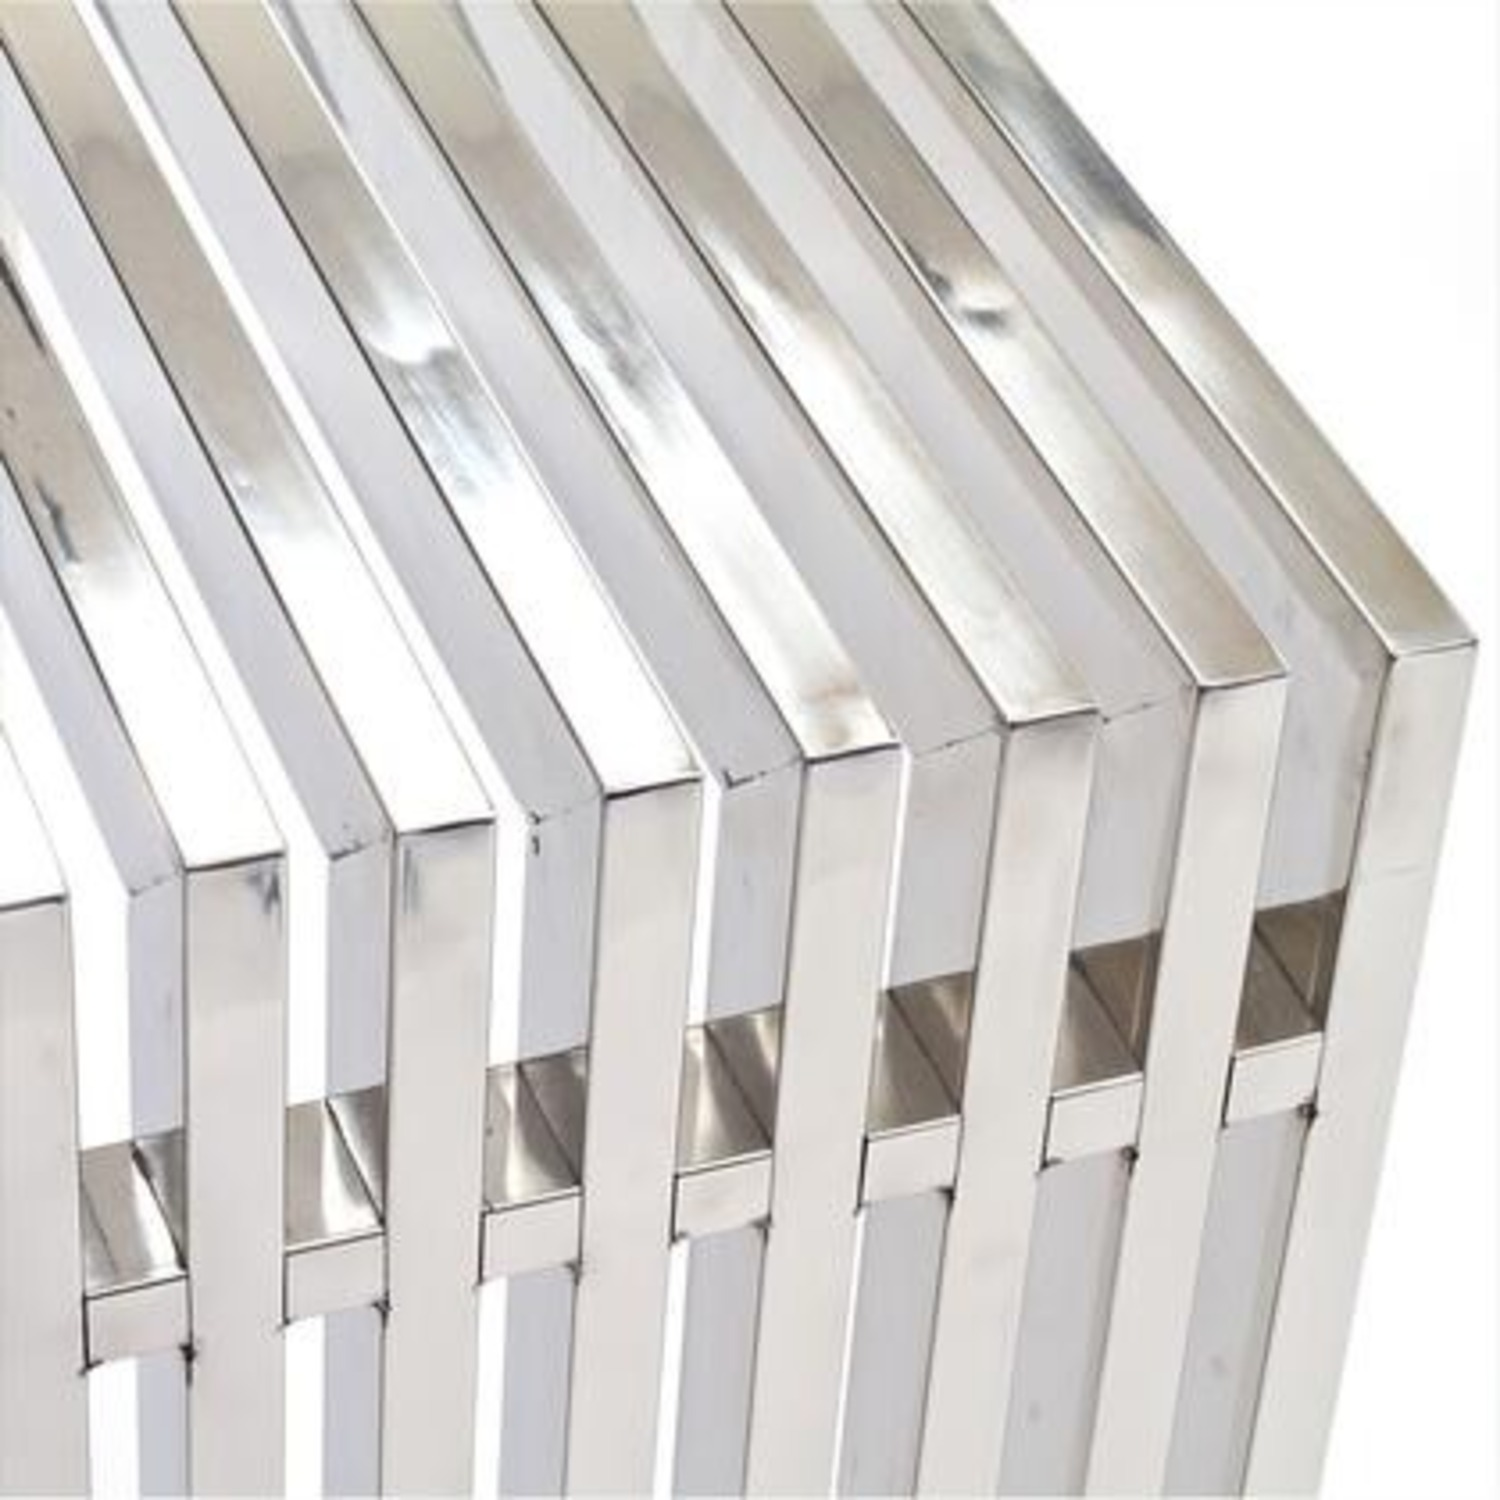 Modern Console Table In Silver Tubular Steel - image-1